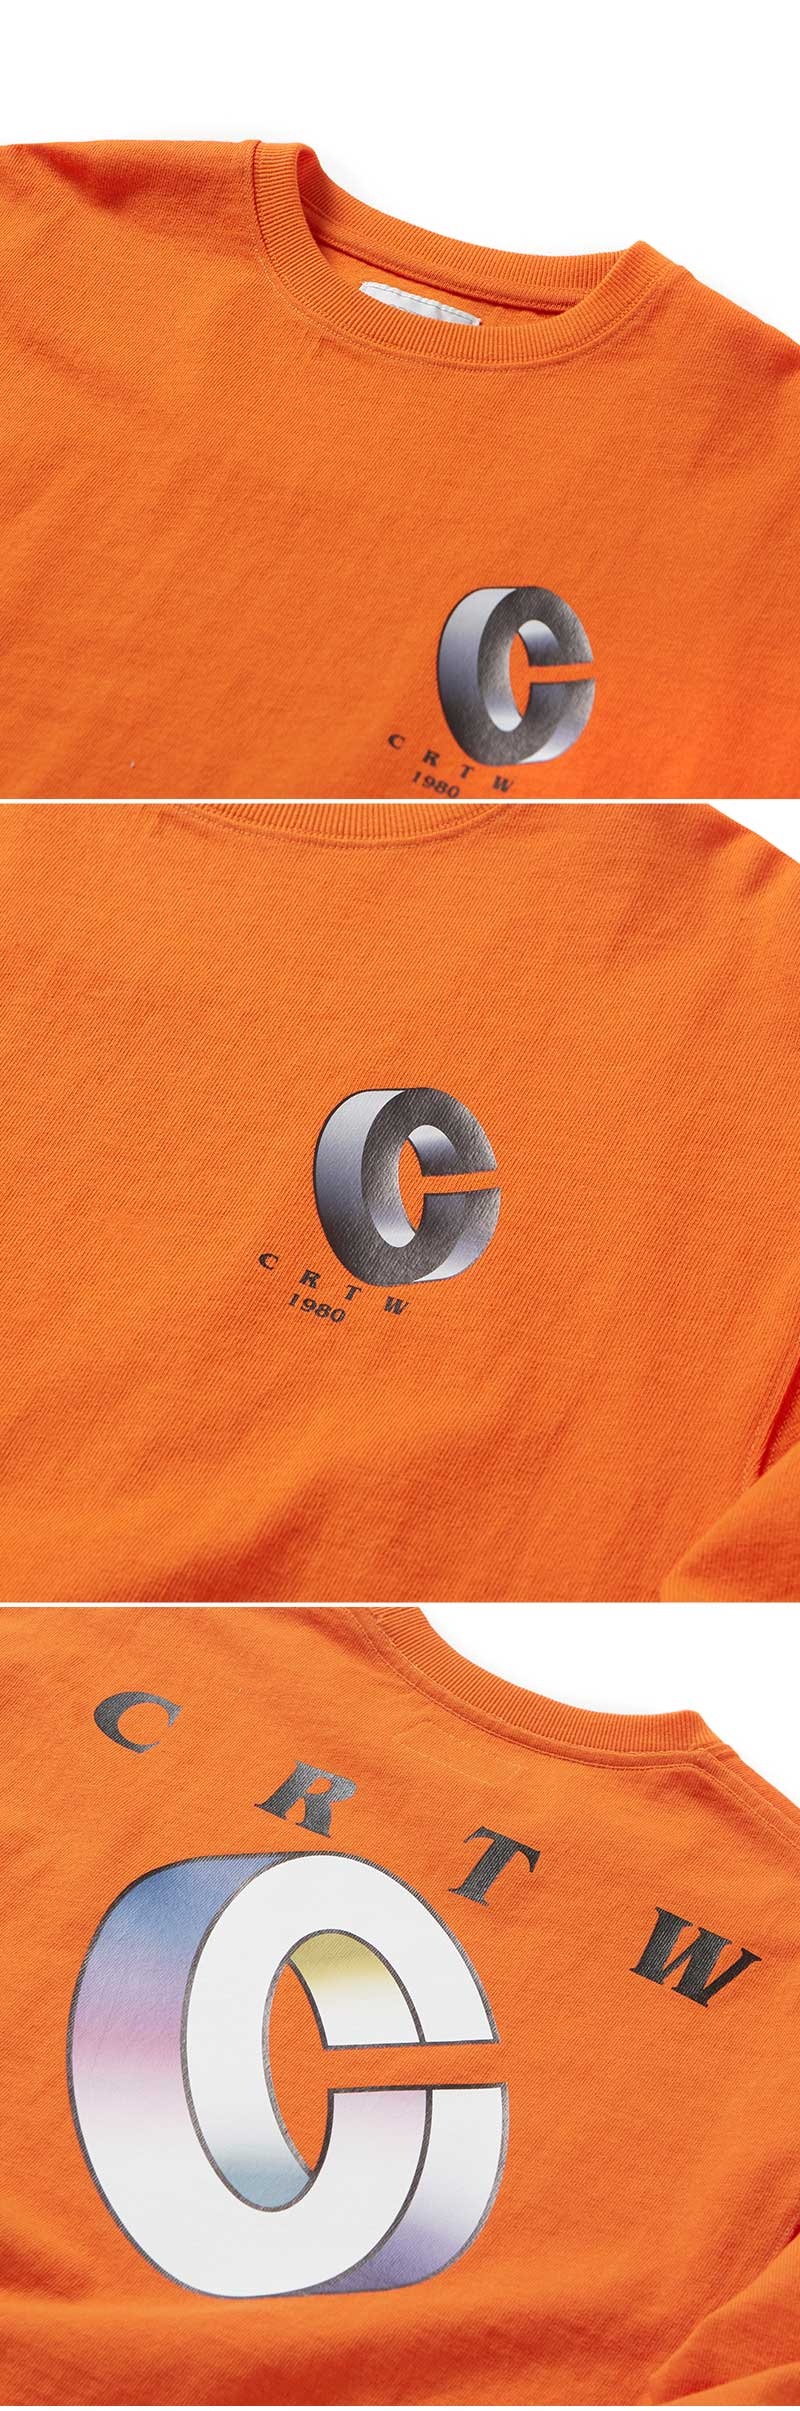 크리틱(CRITIC) CRTW 1980 LONG SLEEVE T-SHIRT(ORANGE)_CTOGPRL10UO0